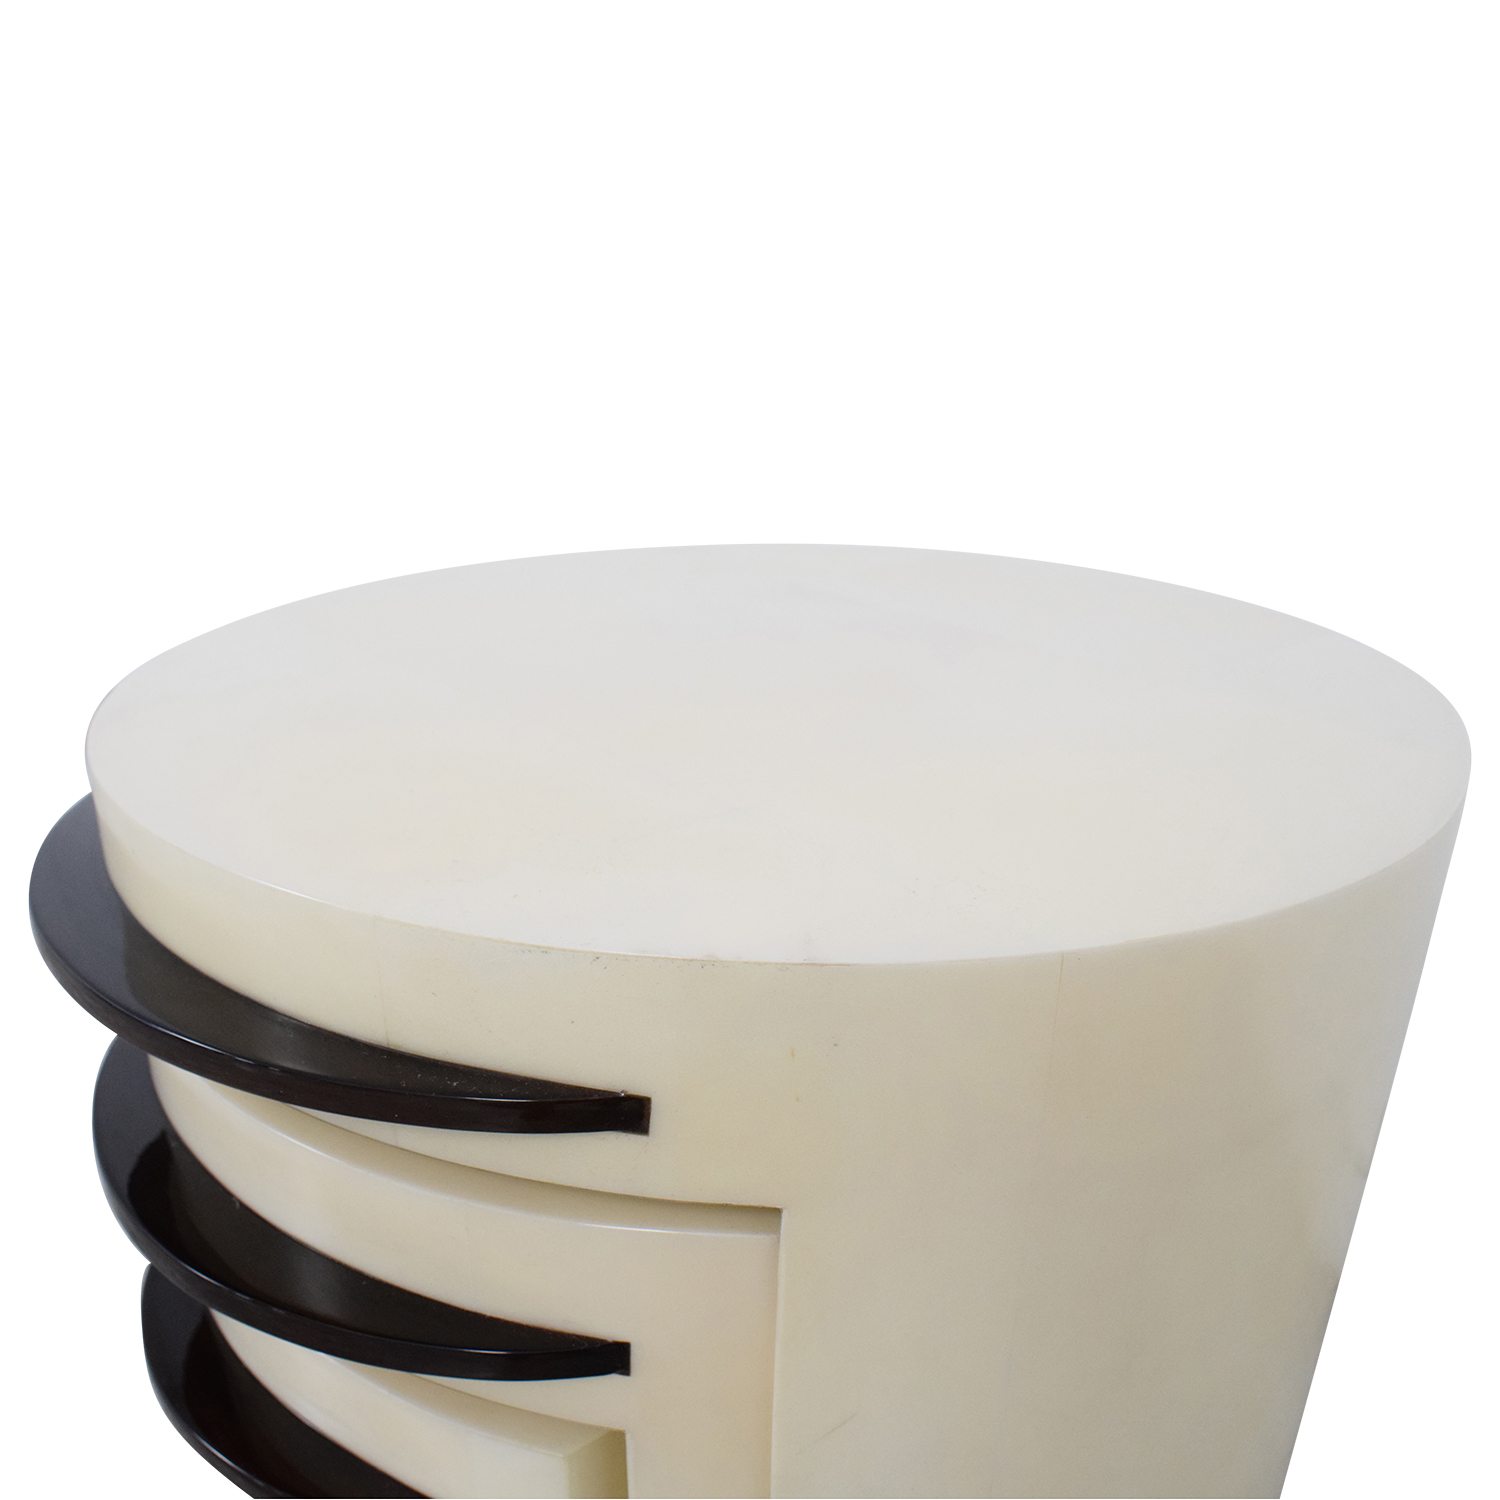 Lorin Marsh Lacquered Nesting Tables sale